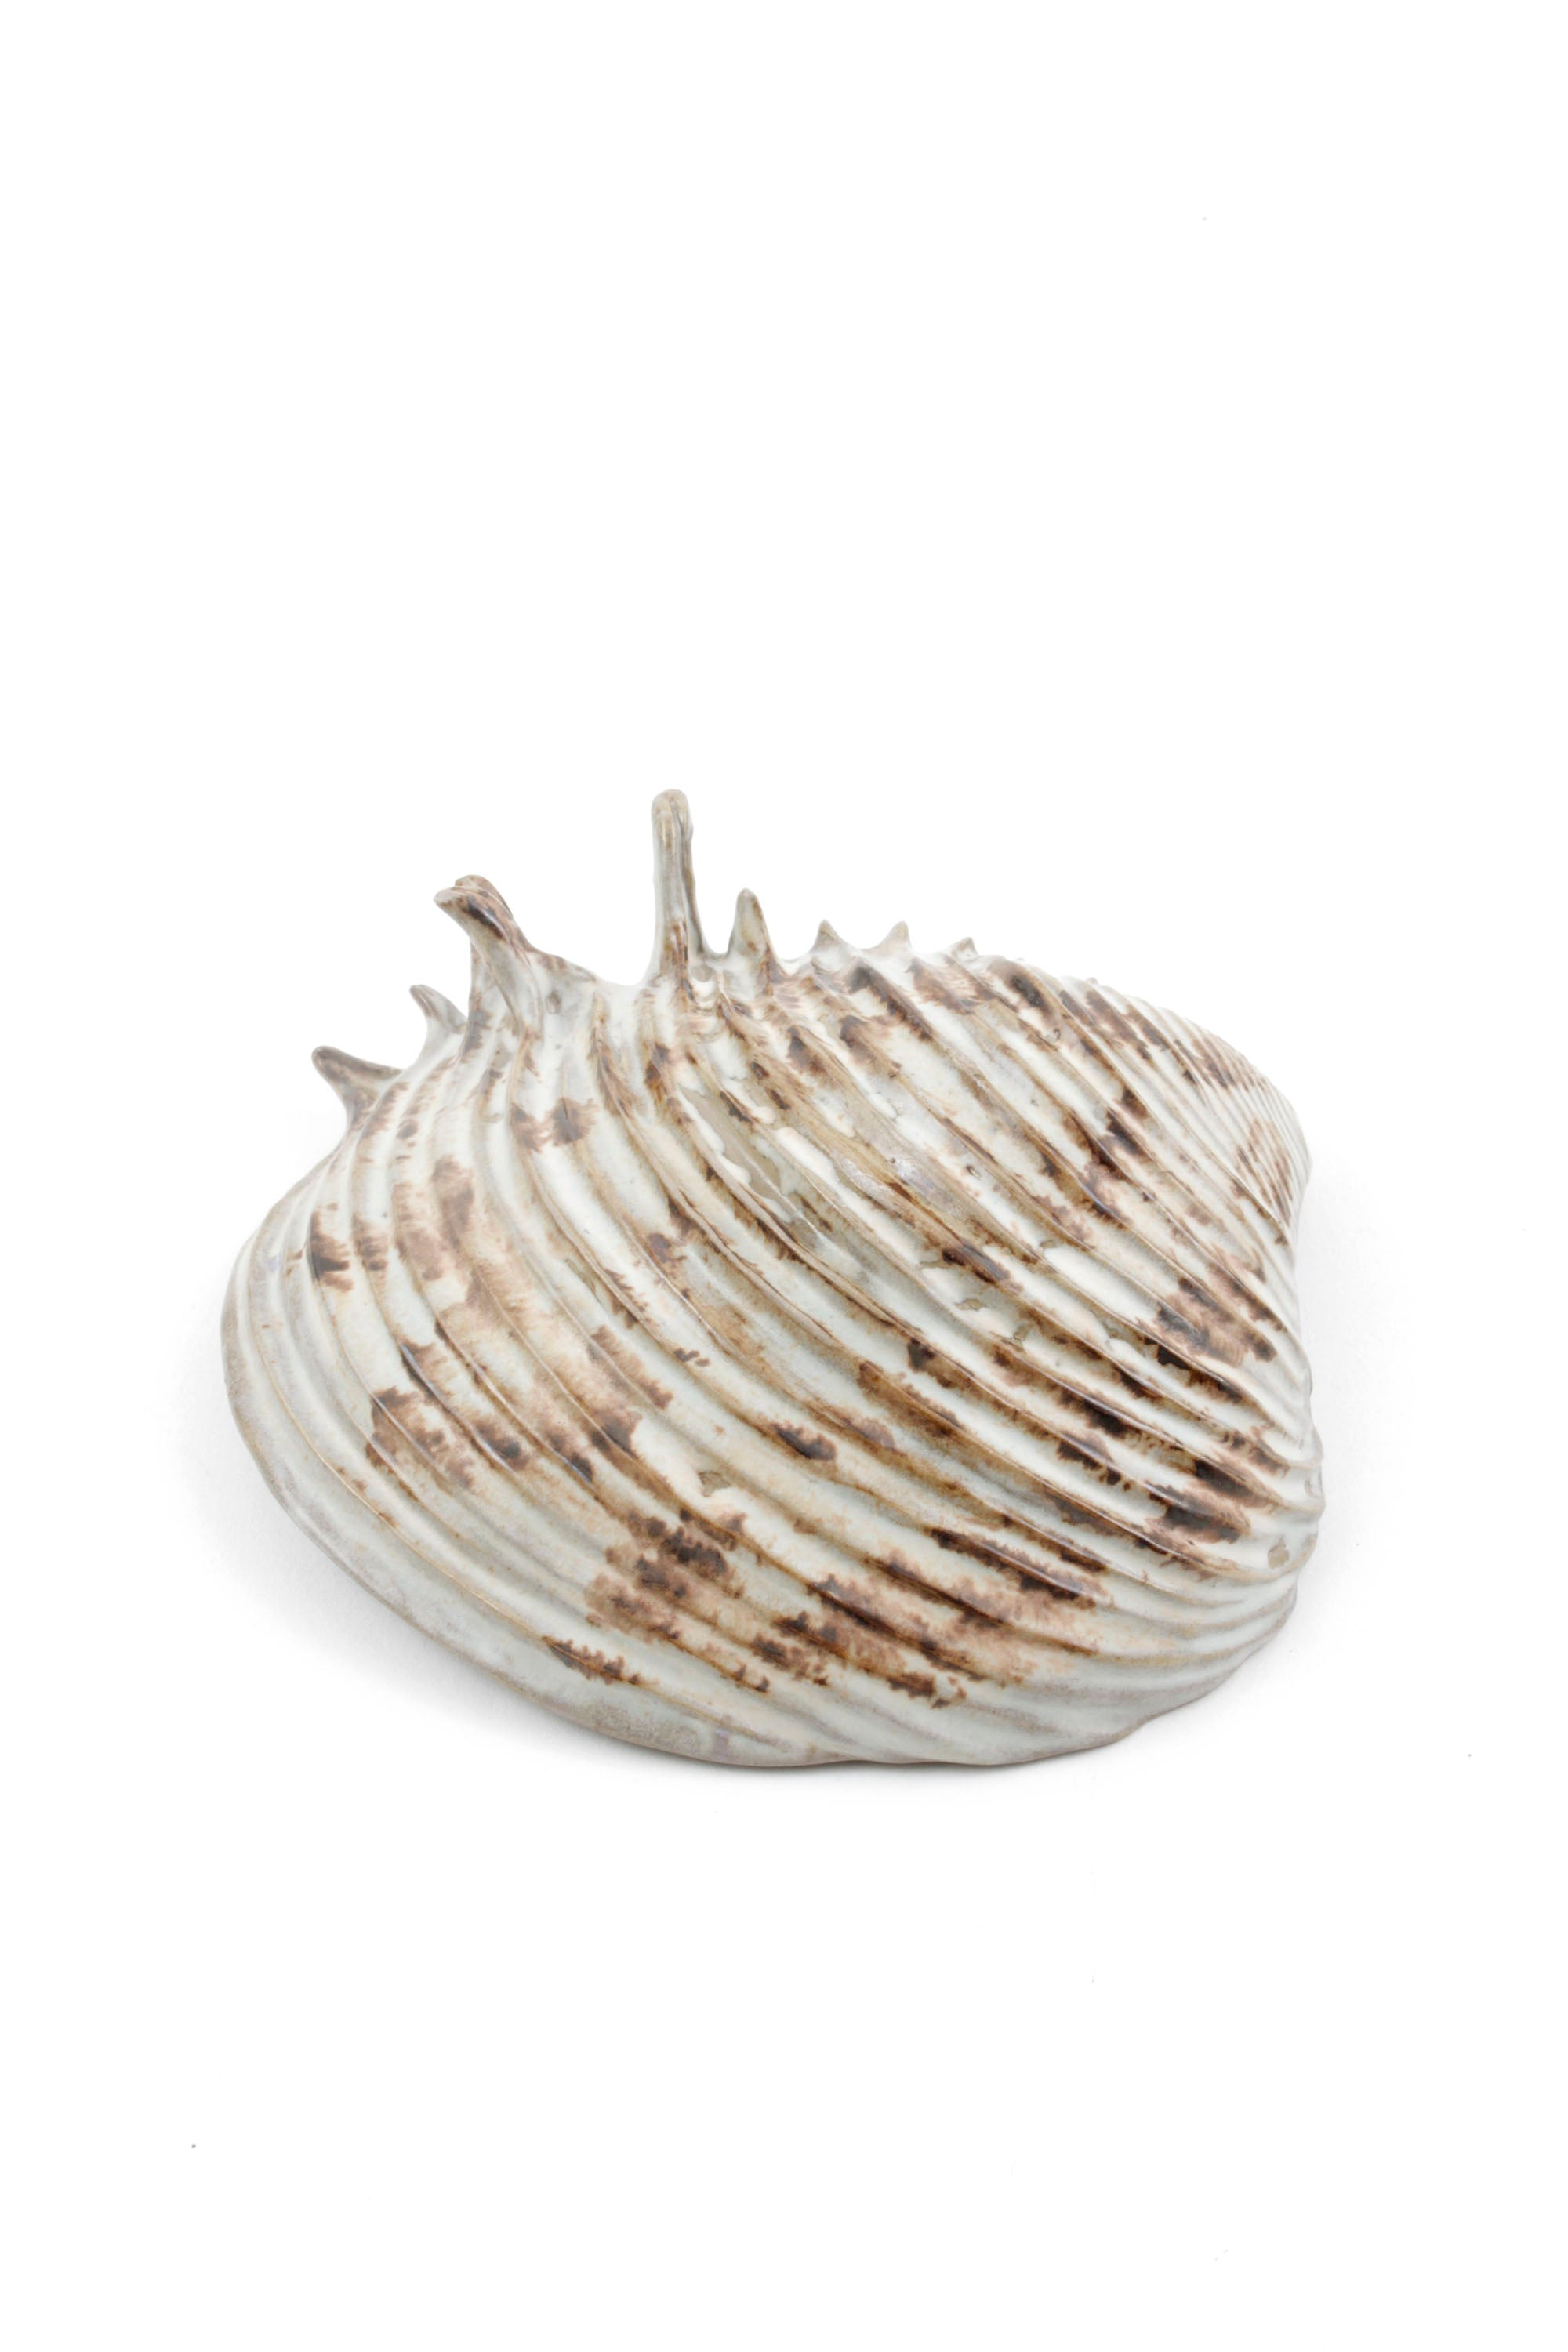 Yarnnakarn Oceanology Channeled Clam Shell Dish